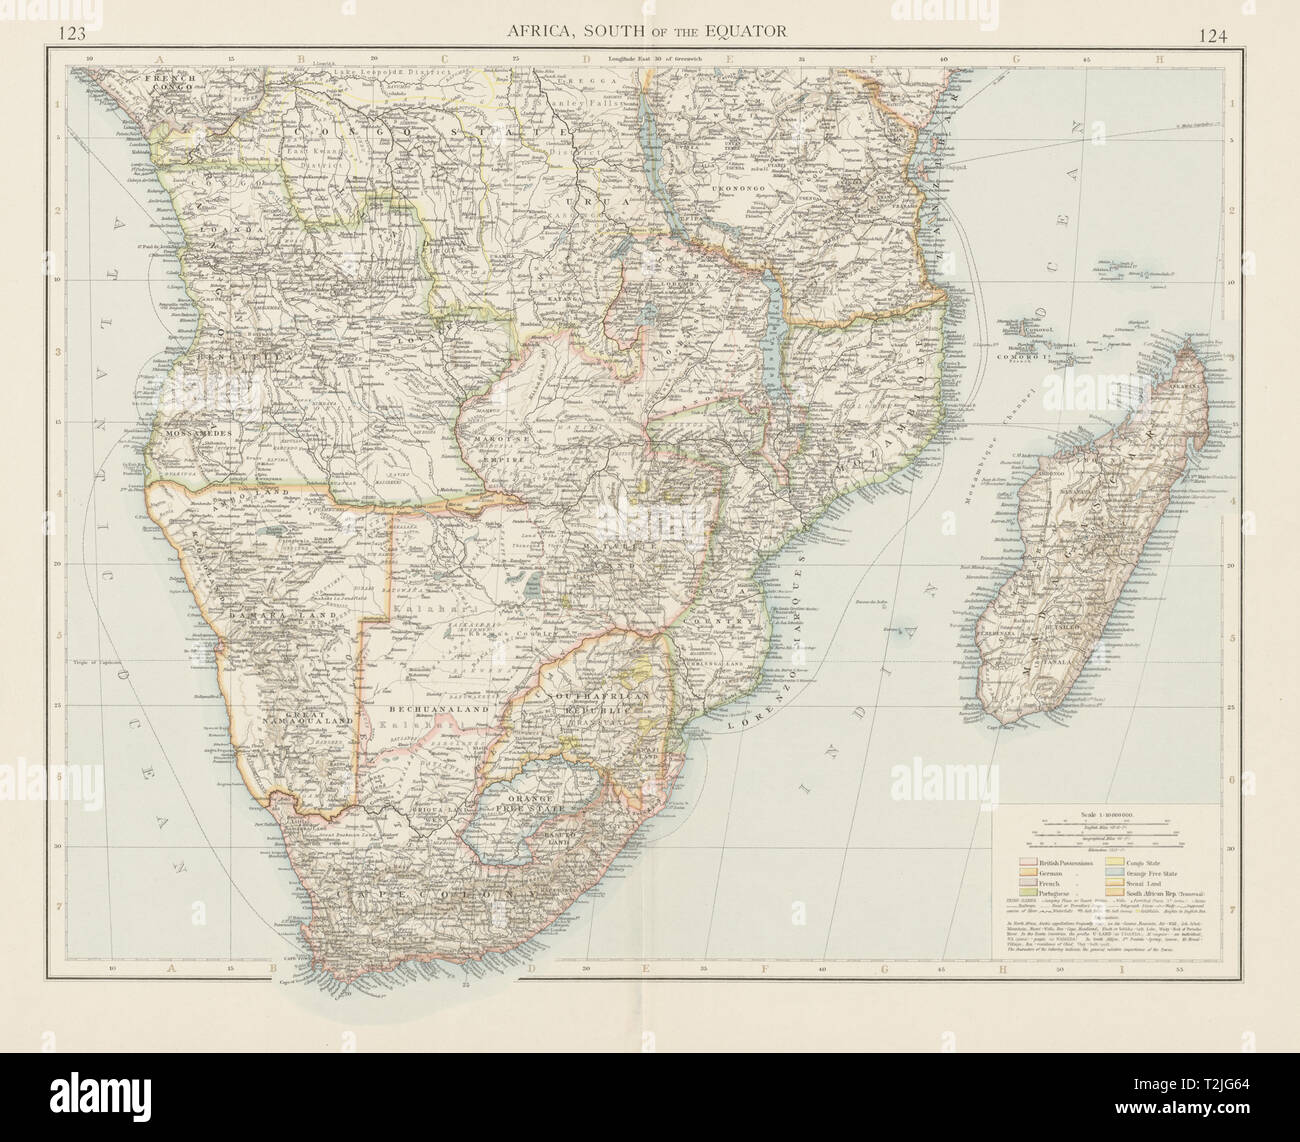 Map Of Africa With Equator.Africa Map Equator Stock Photos Africa Map Equator Stock Images